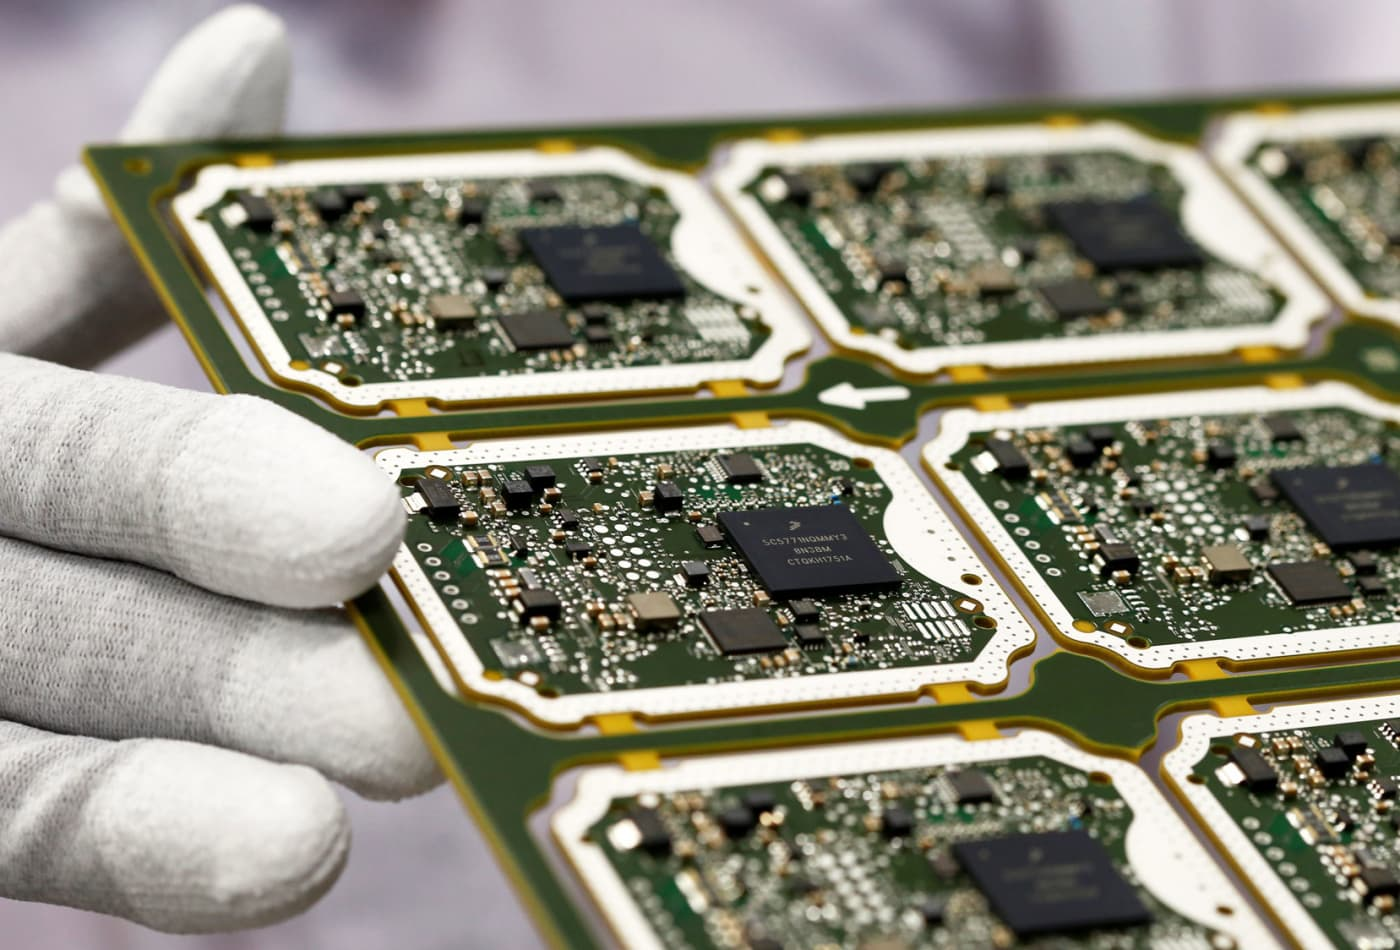 The semiconductor surge continues despite trade worries, and options traders see no end in sight